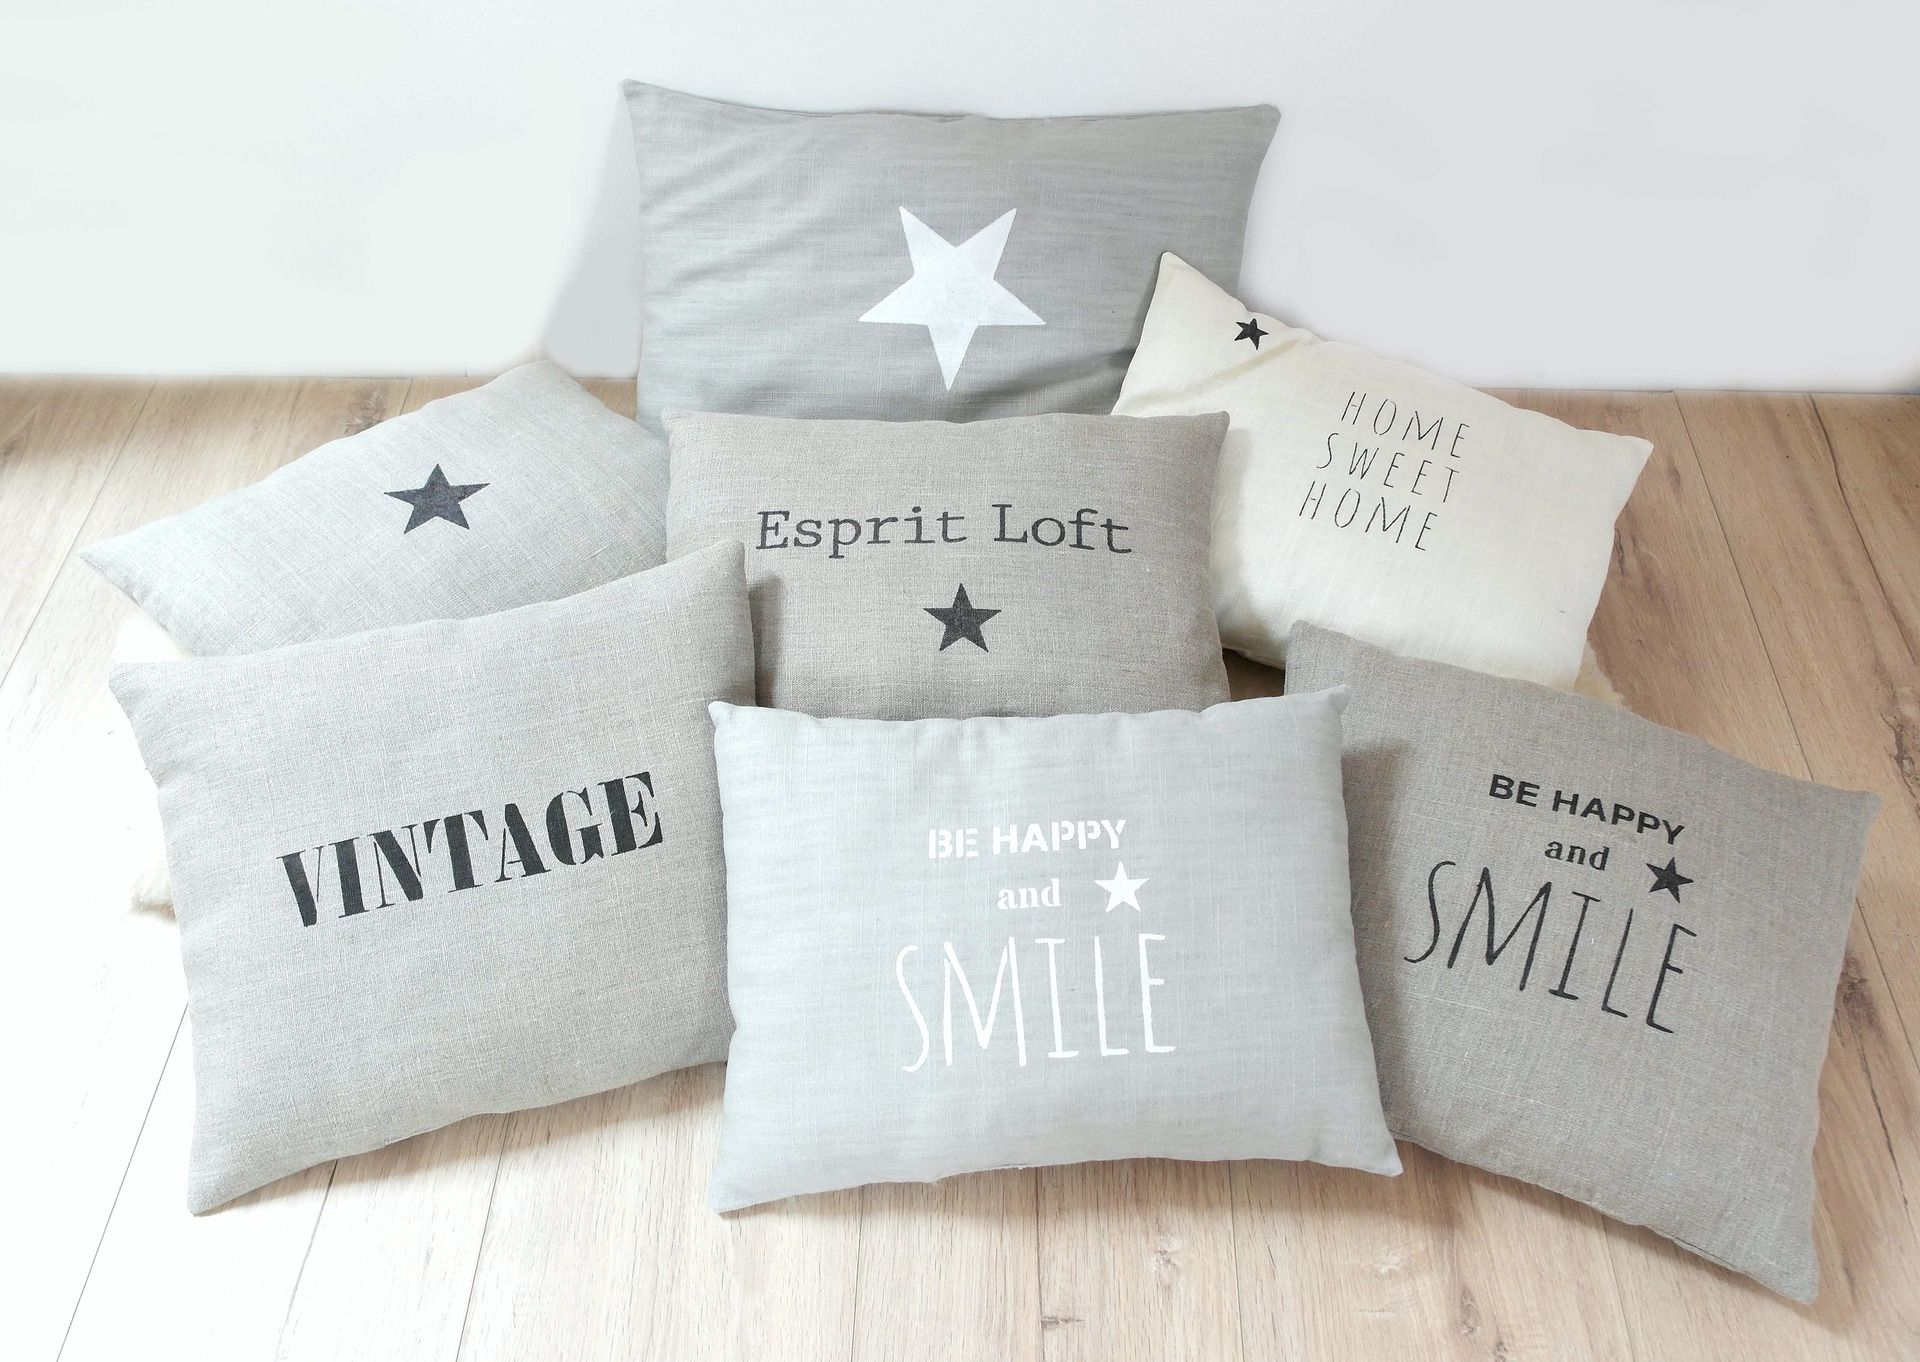 coussin typographie vintage en lin naturel avec inscription noire textiles et tapis par 3. Black Bedroom Furniture Sets. Home Design Ideas